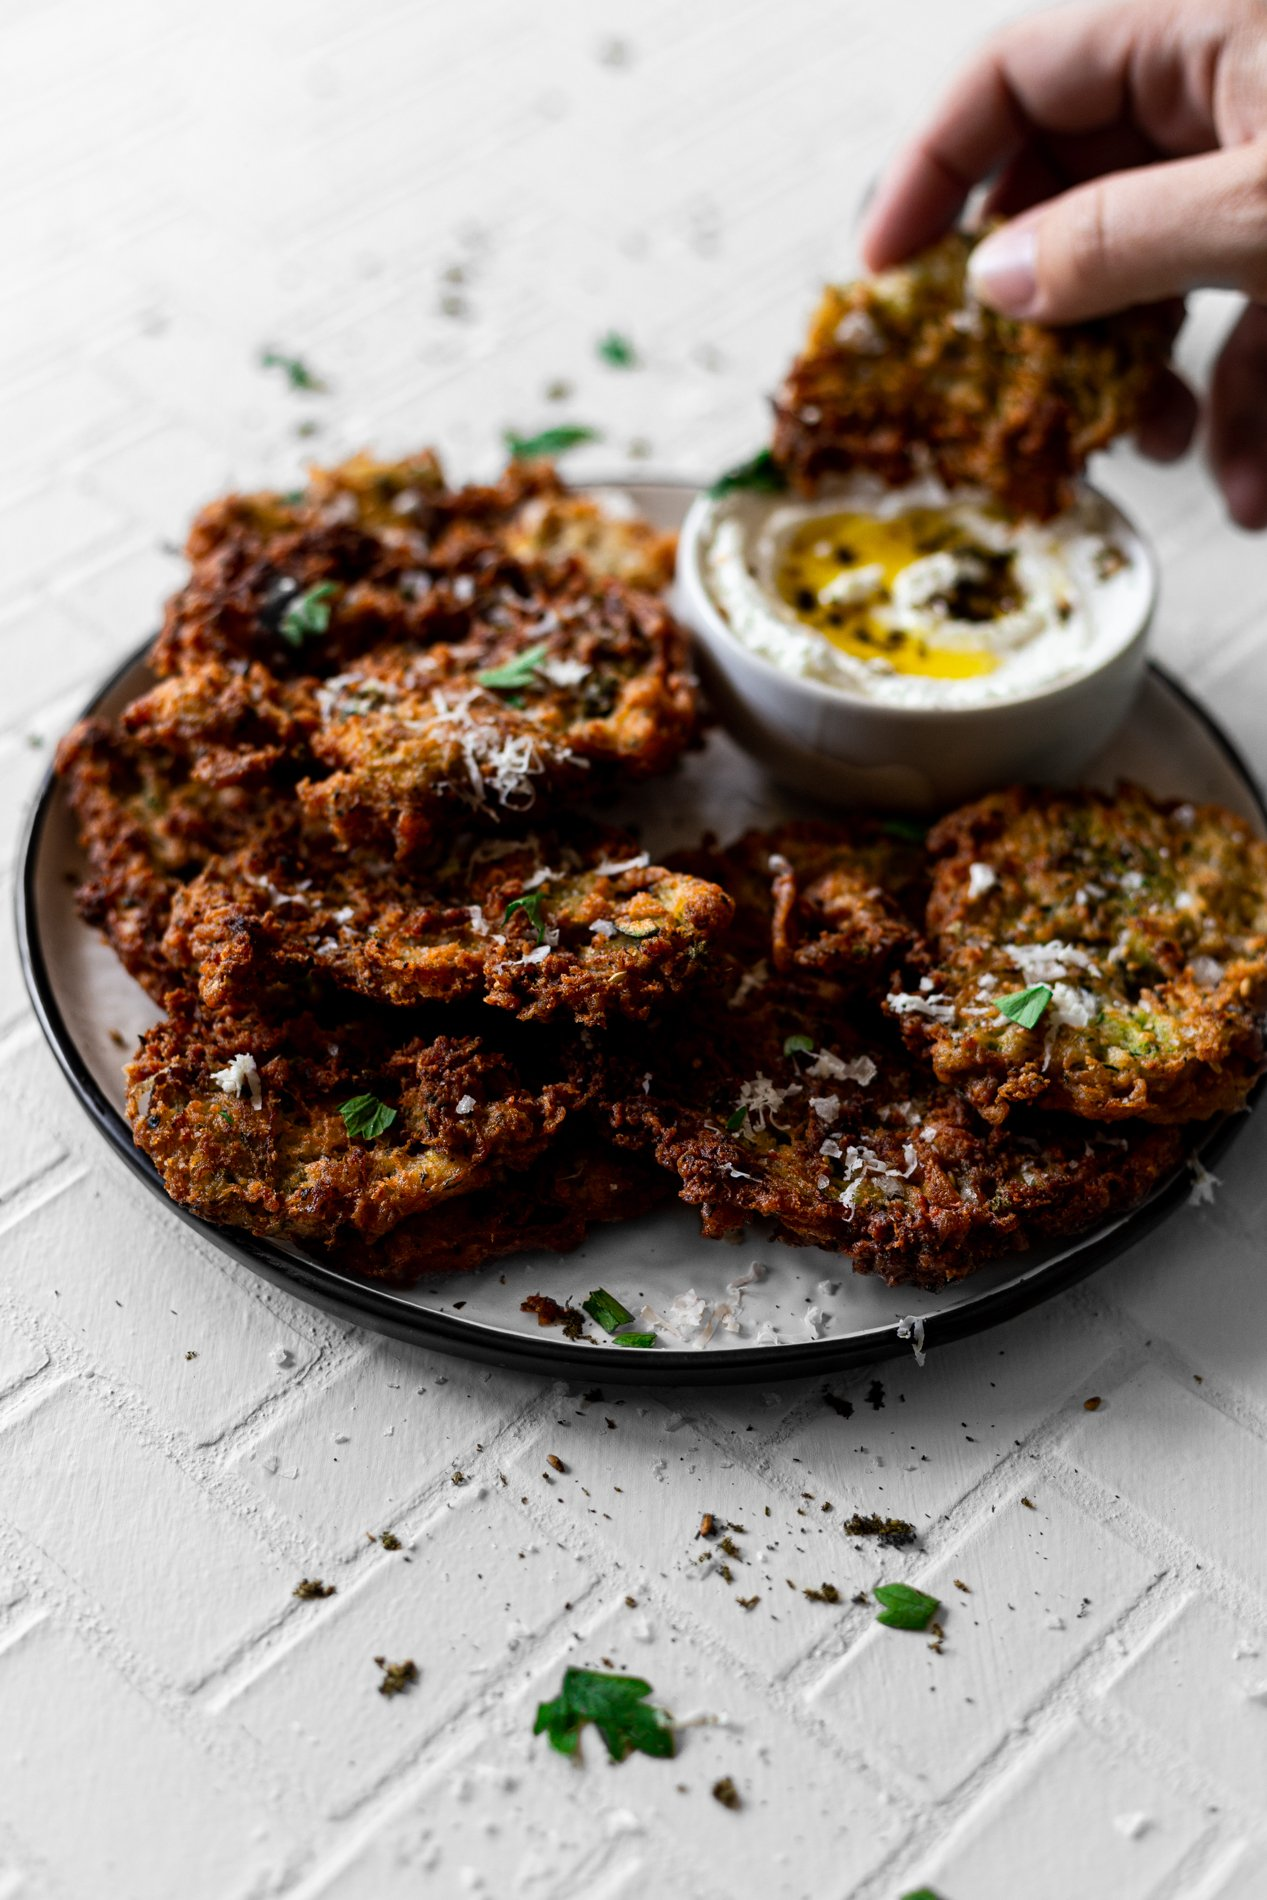 angled view of a plate of za'atar spiced zucchini fritters with one fritter being dipped into a bowl of homemade labneh